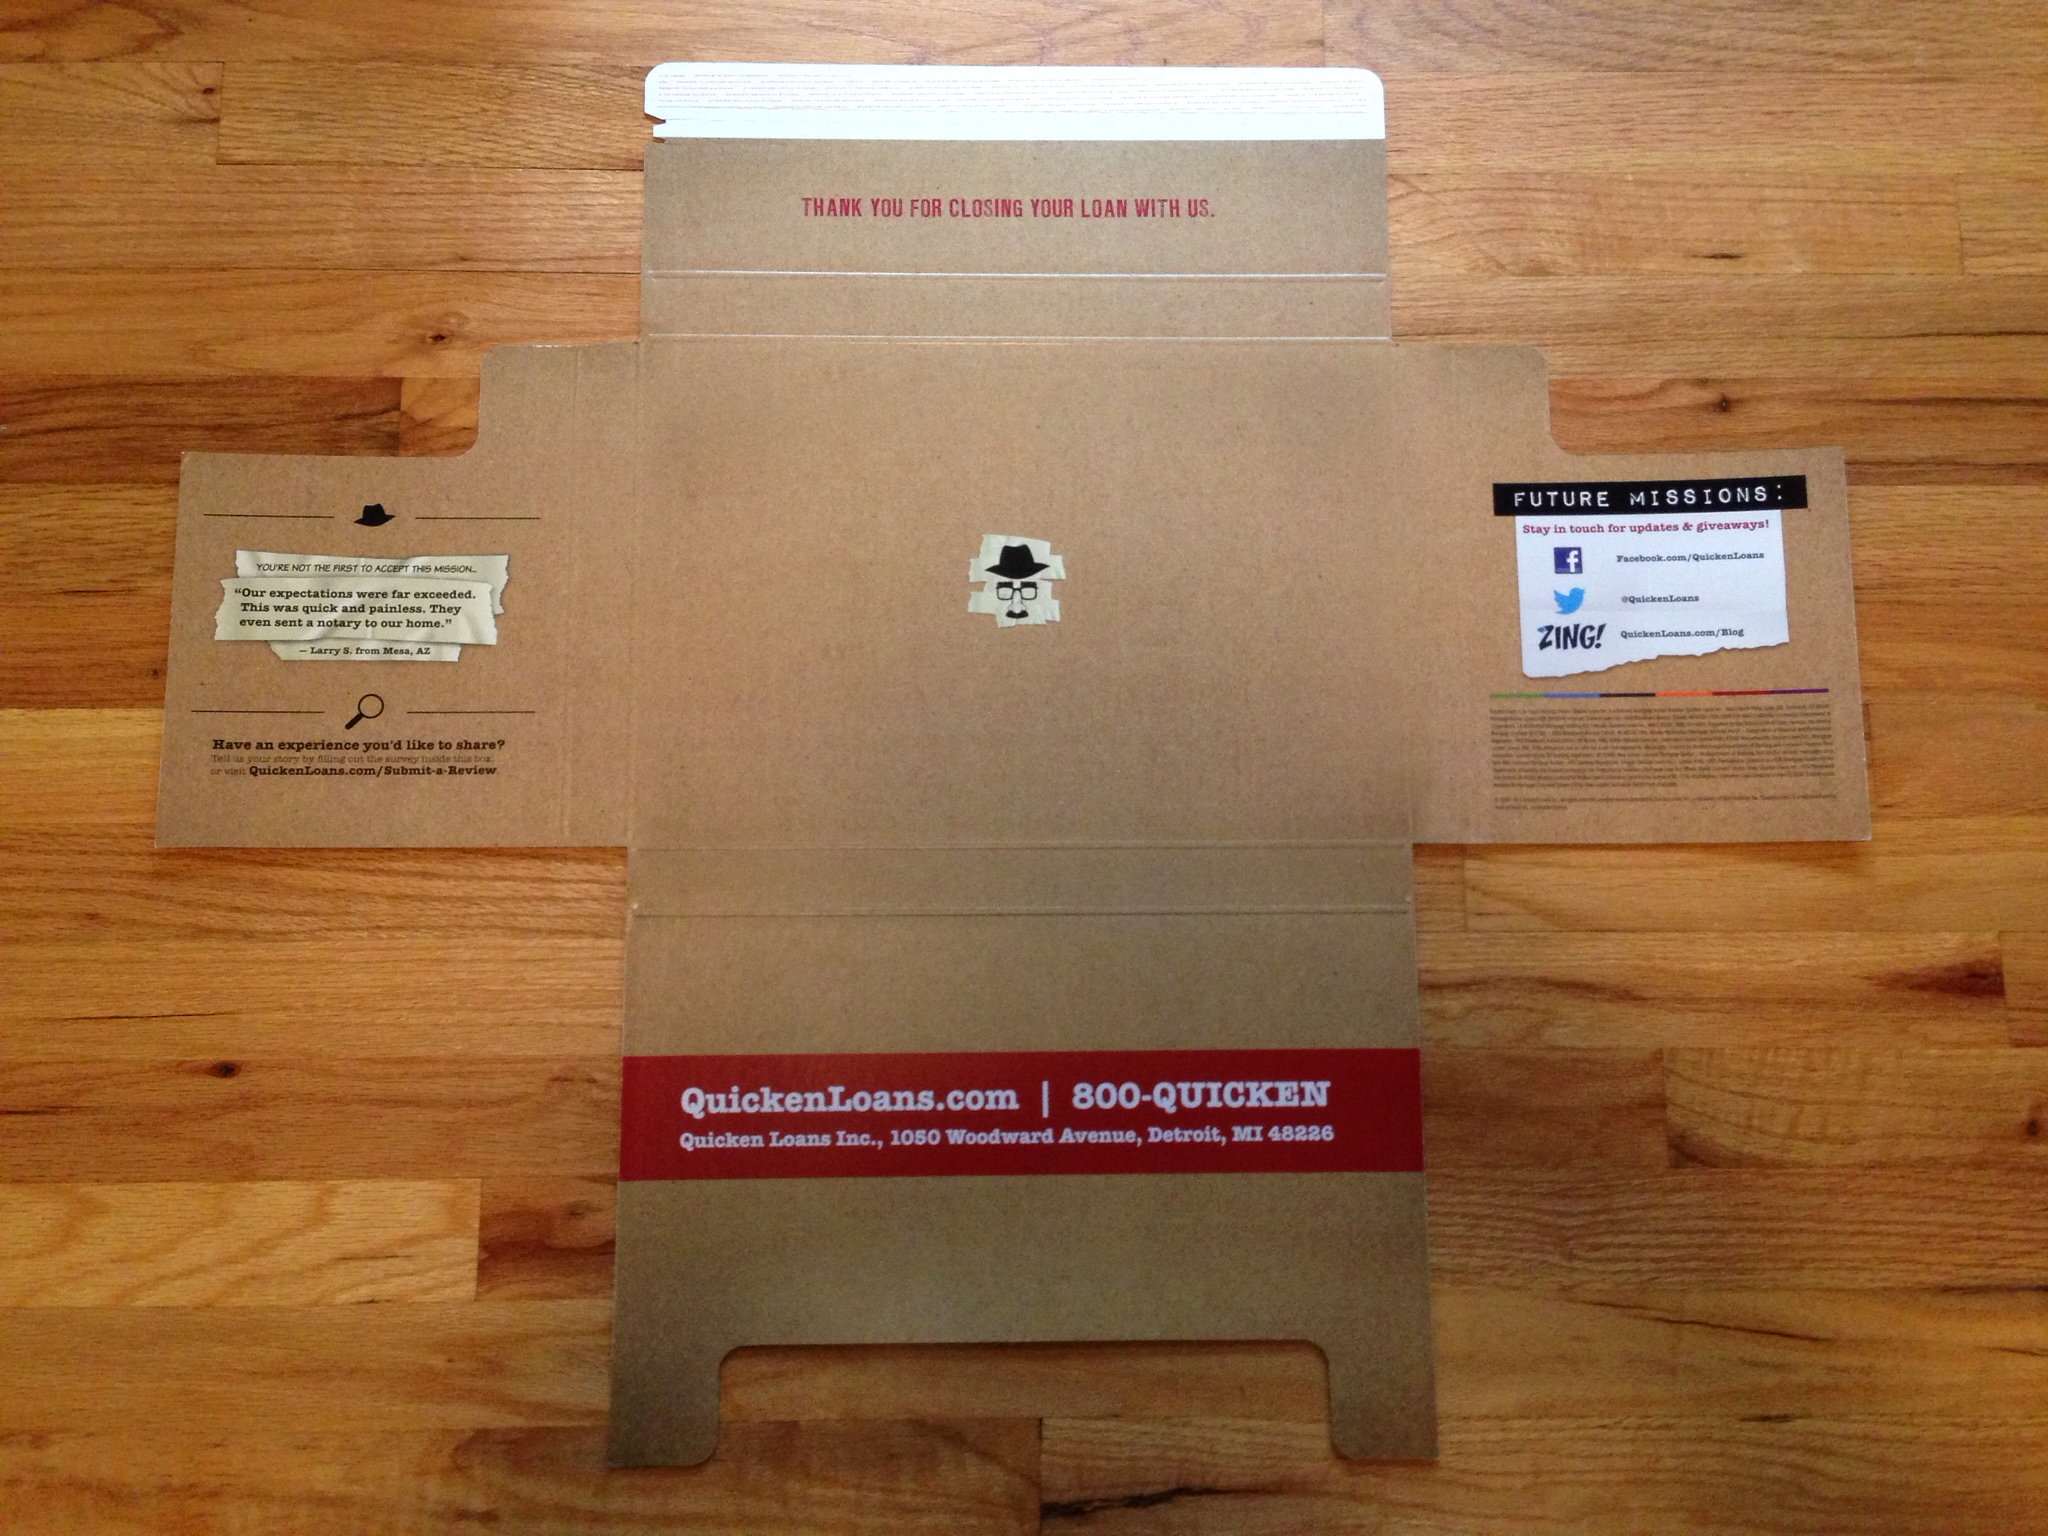 Quicken-Loans-Mortgage-Possible-Closing-Box-Packaging-Flat-Inside.JPG